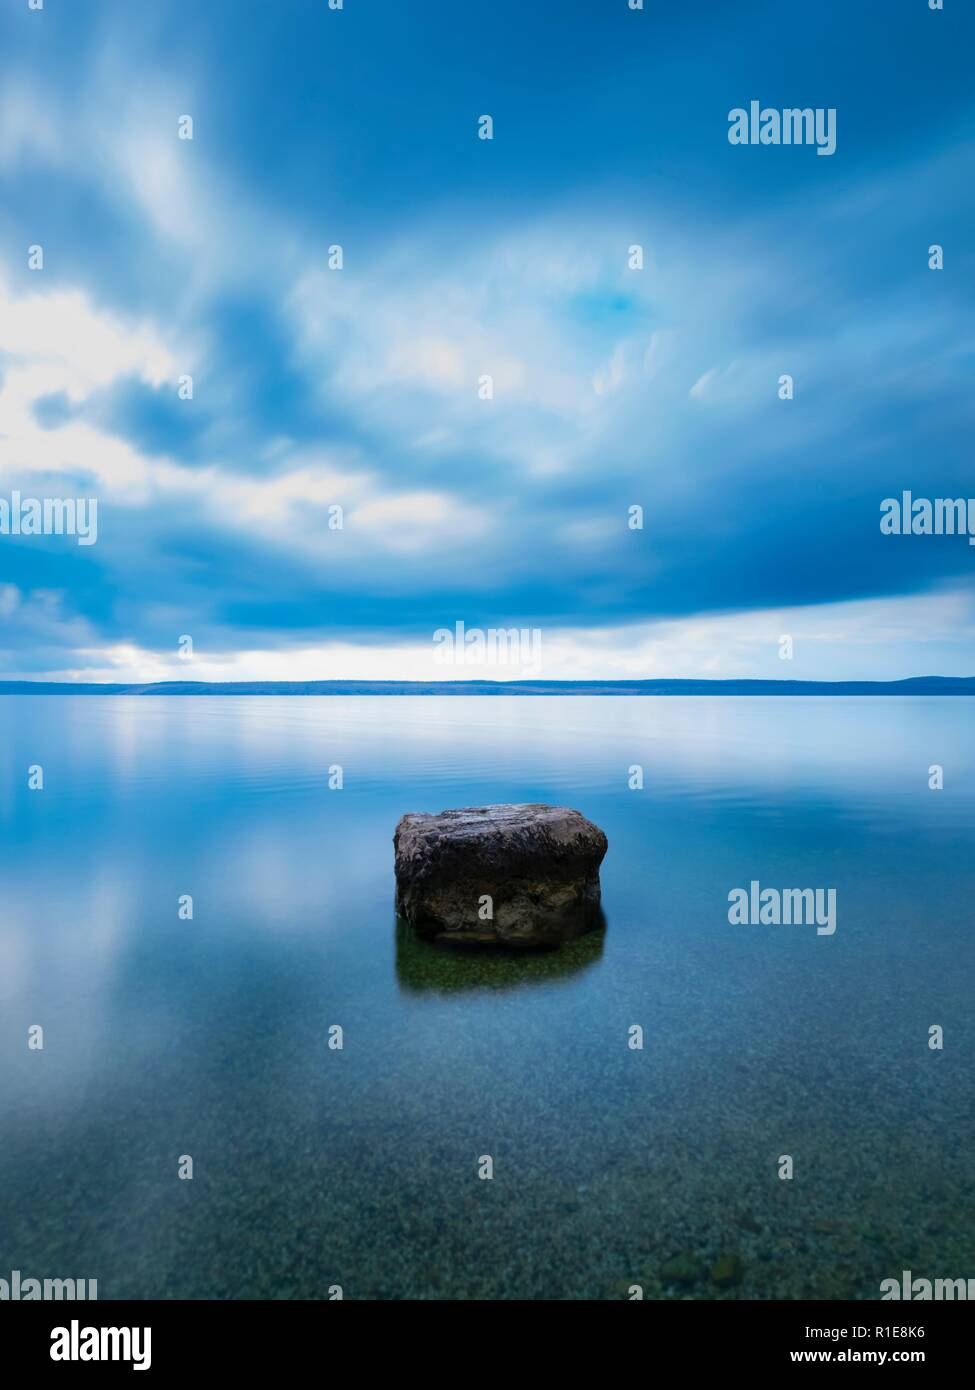 Long exposure lonely rock on smooth glass-like sea surface - Stock Image